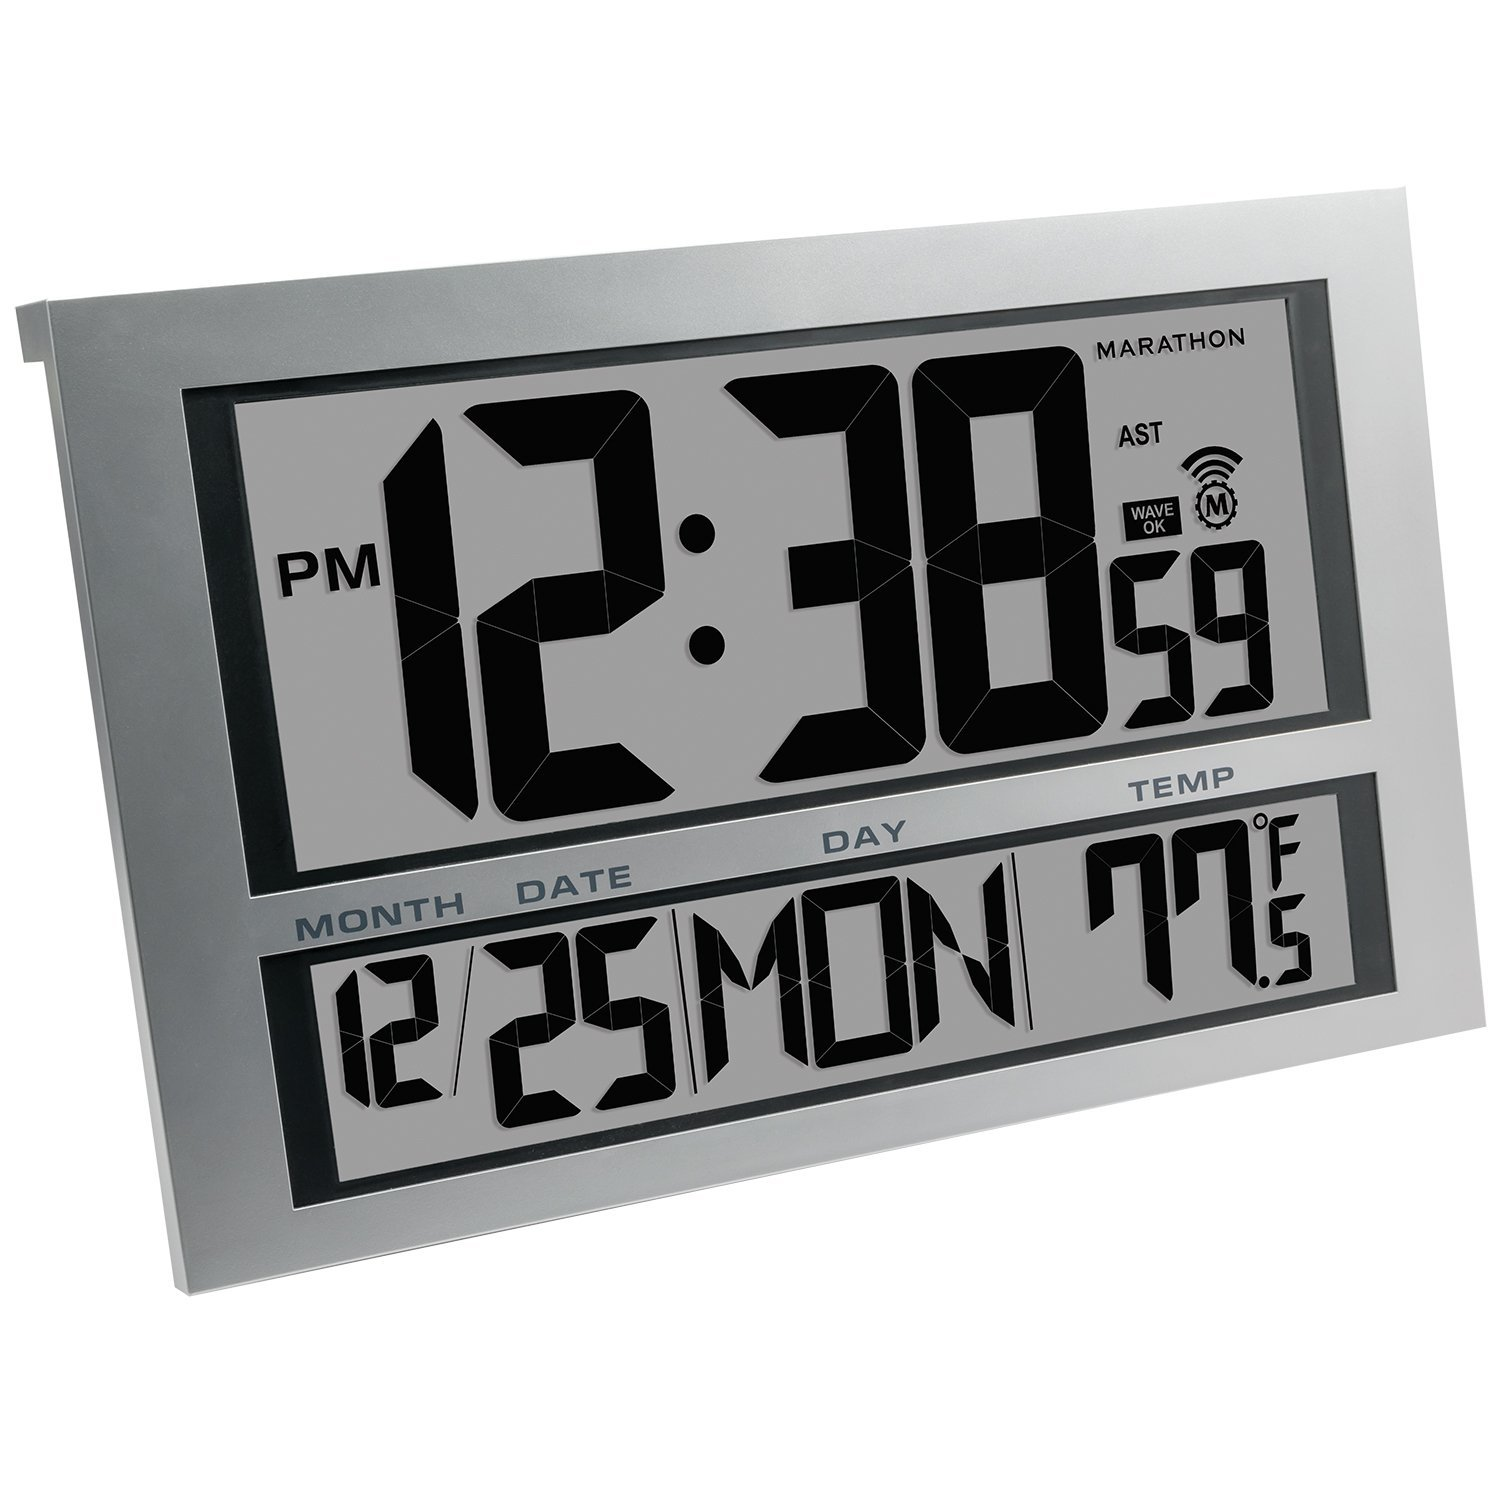 Marathon Jumbo Atomic Wall Clock with Indoor Temperature & Date, 6 Time Zones and Large LCD Display